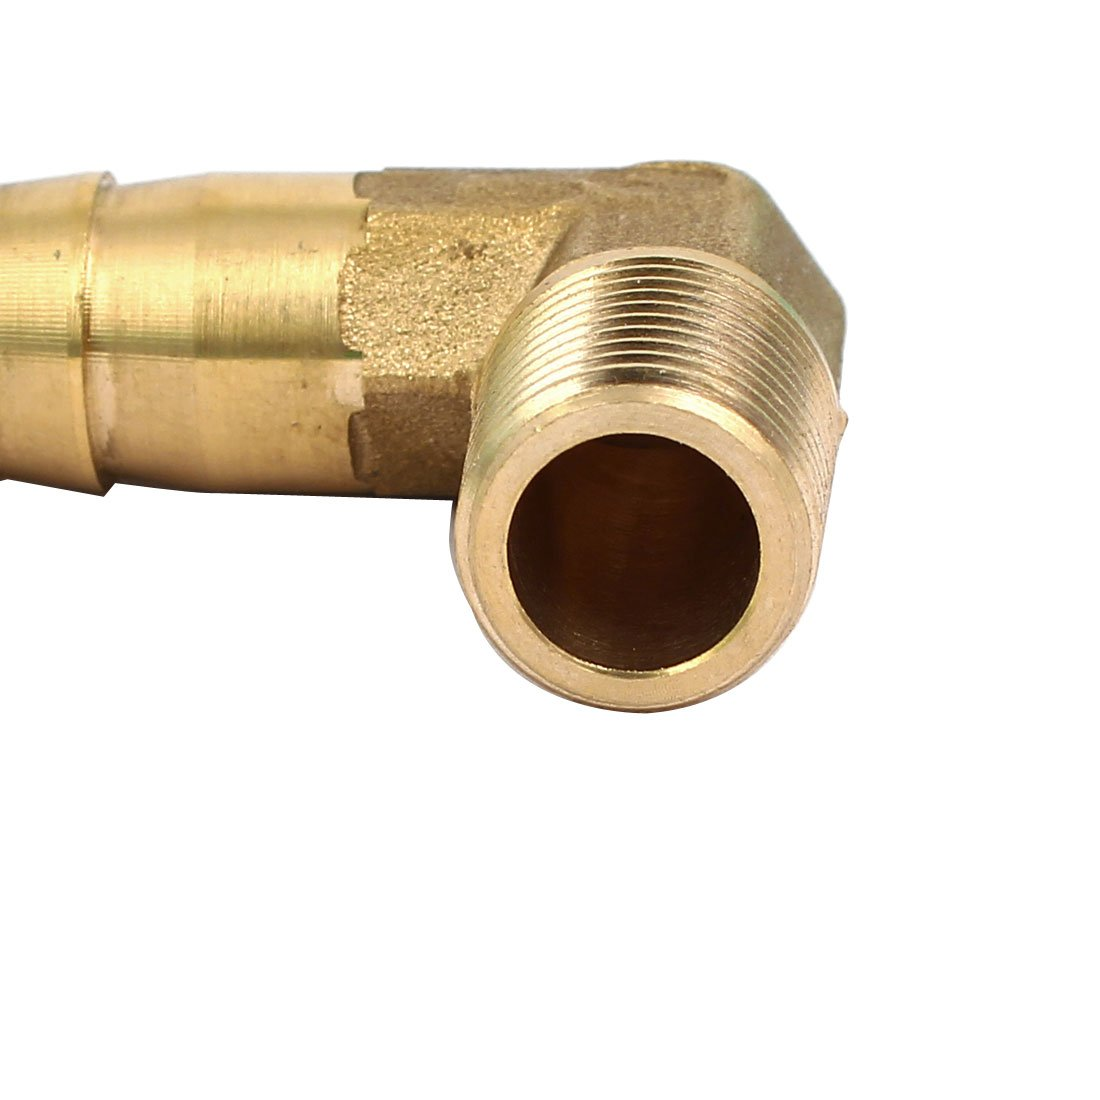 uxcell 1//4BSP Male Thread 12mm Hose Barb Fitting Right Angle Elbow Coupler Connector